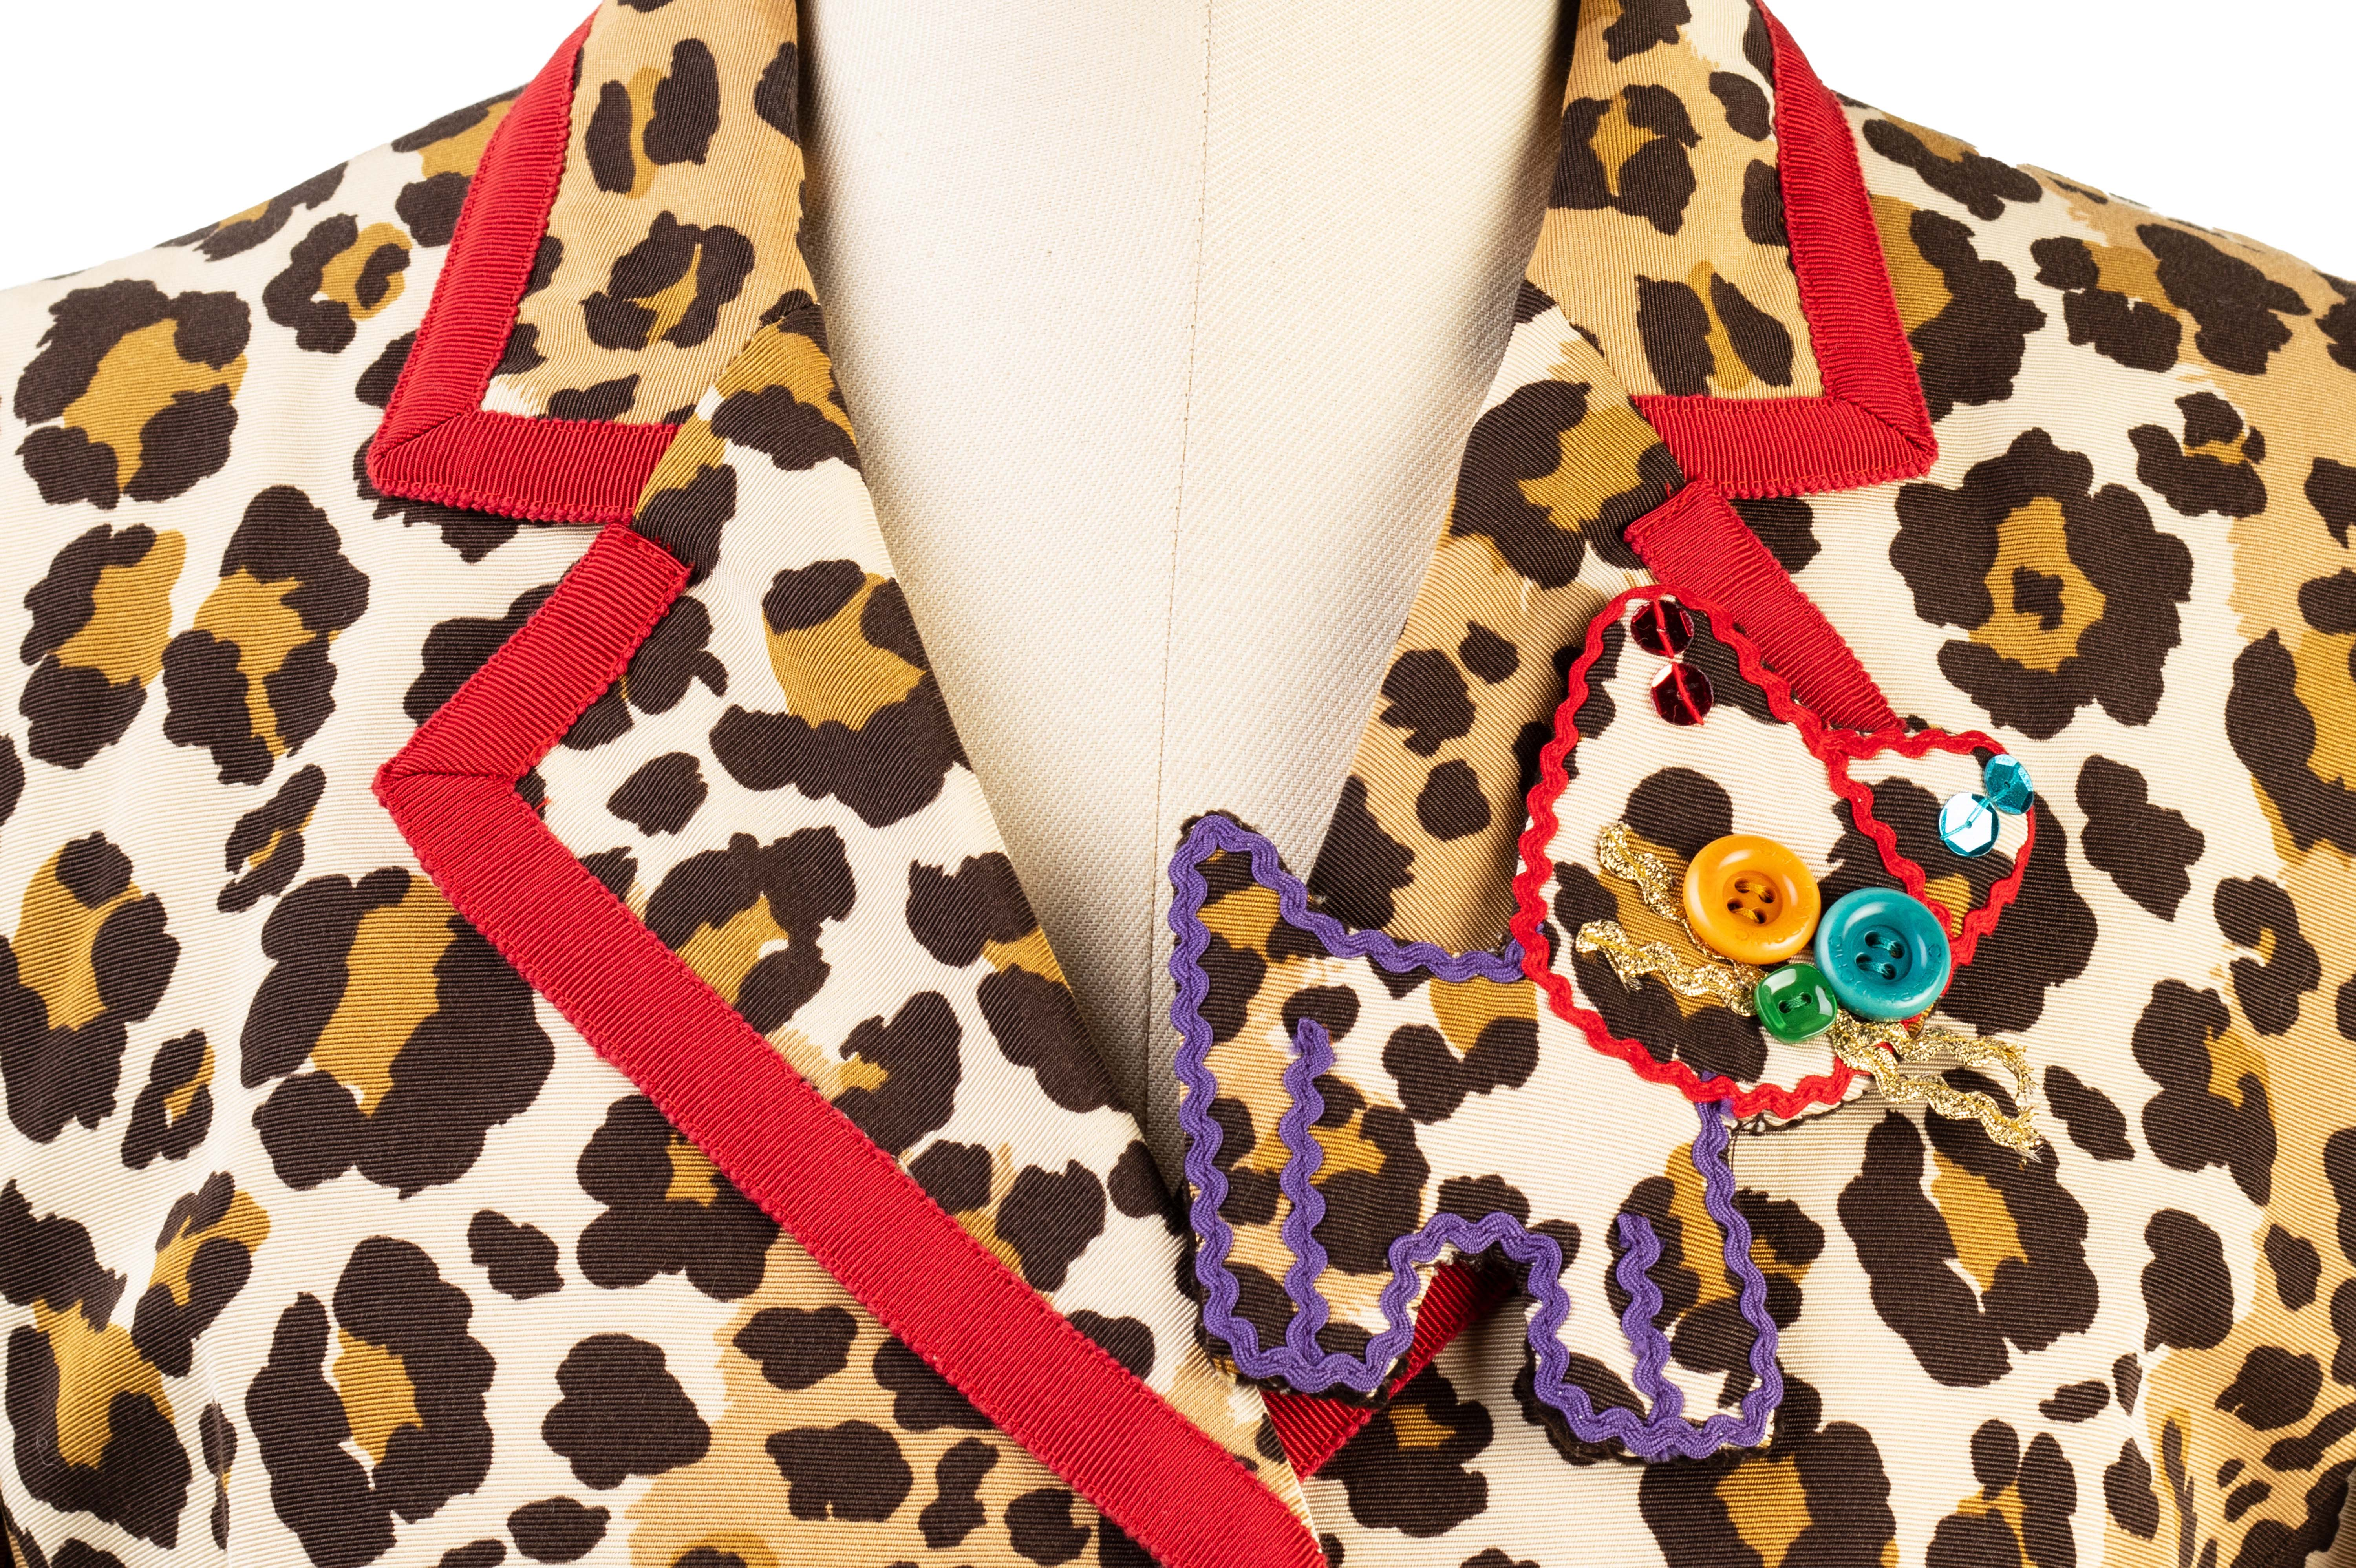 A MOSCHINO 'CHEAP & CHIC' LEOPARD PRINT JACKET - Image 2 of 3